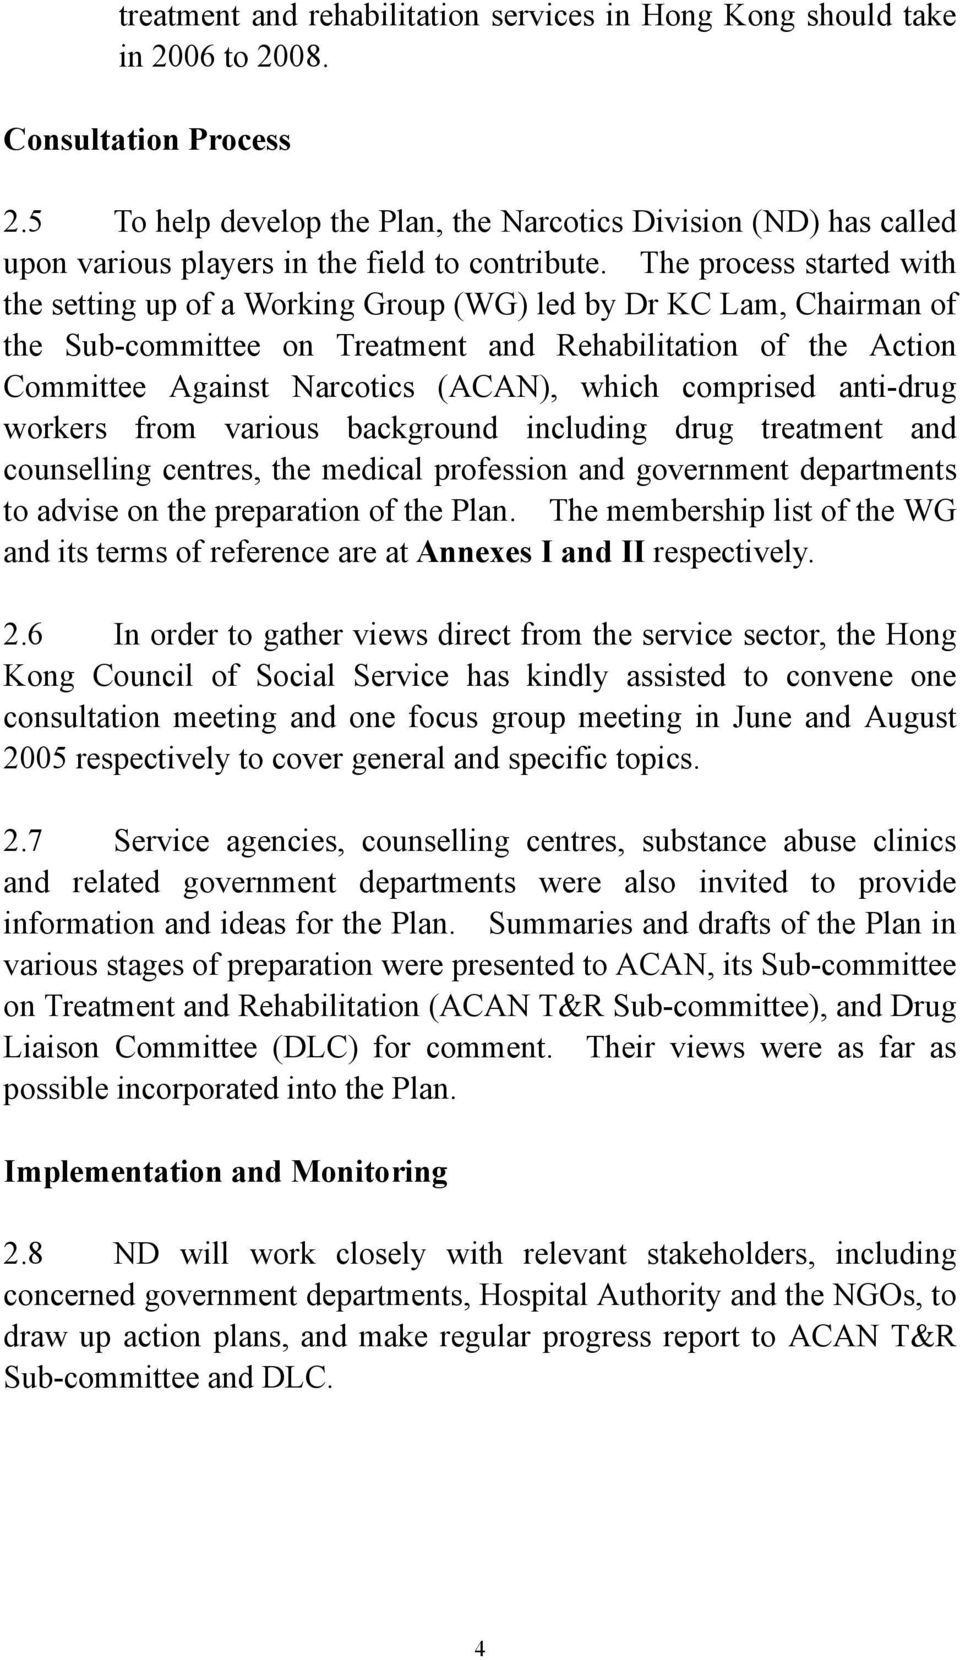 The process started with the setting up of a Working Group (WG) led by Dr KC Lam, Chairman of the Sub-committee on Treatment and Rehabilitation of the Action Committee Against Narcotics (ACAN), which